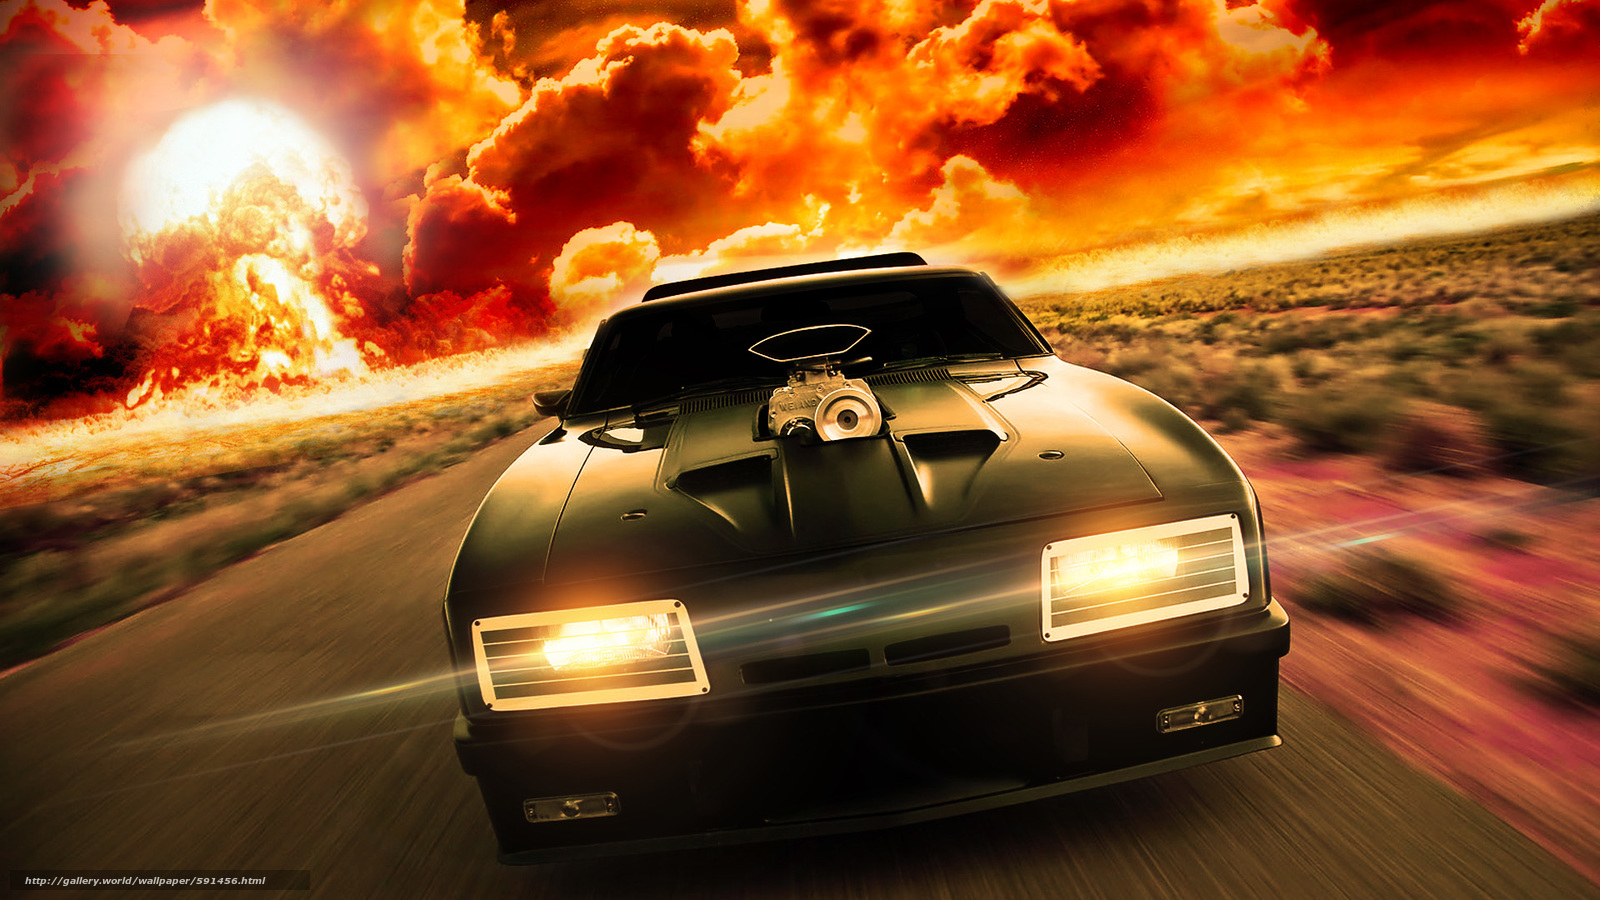 Download Wallpaper Car Speed Fire Flame Free Desktop Wallpaper In